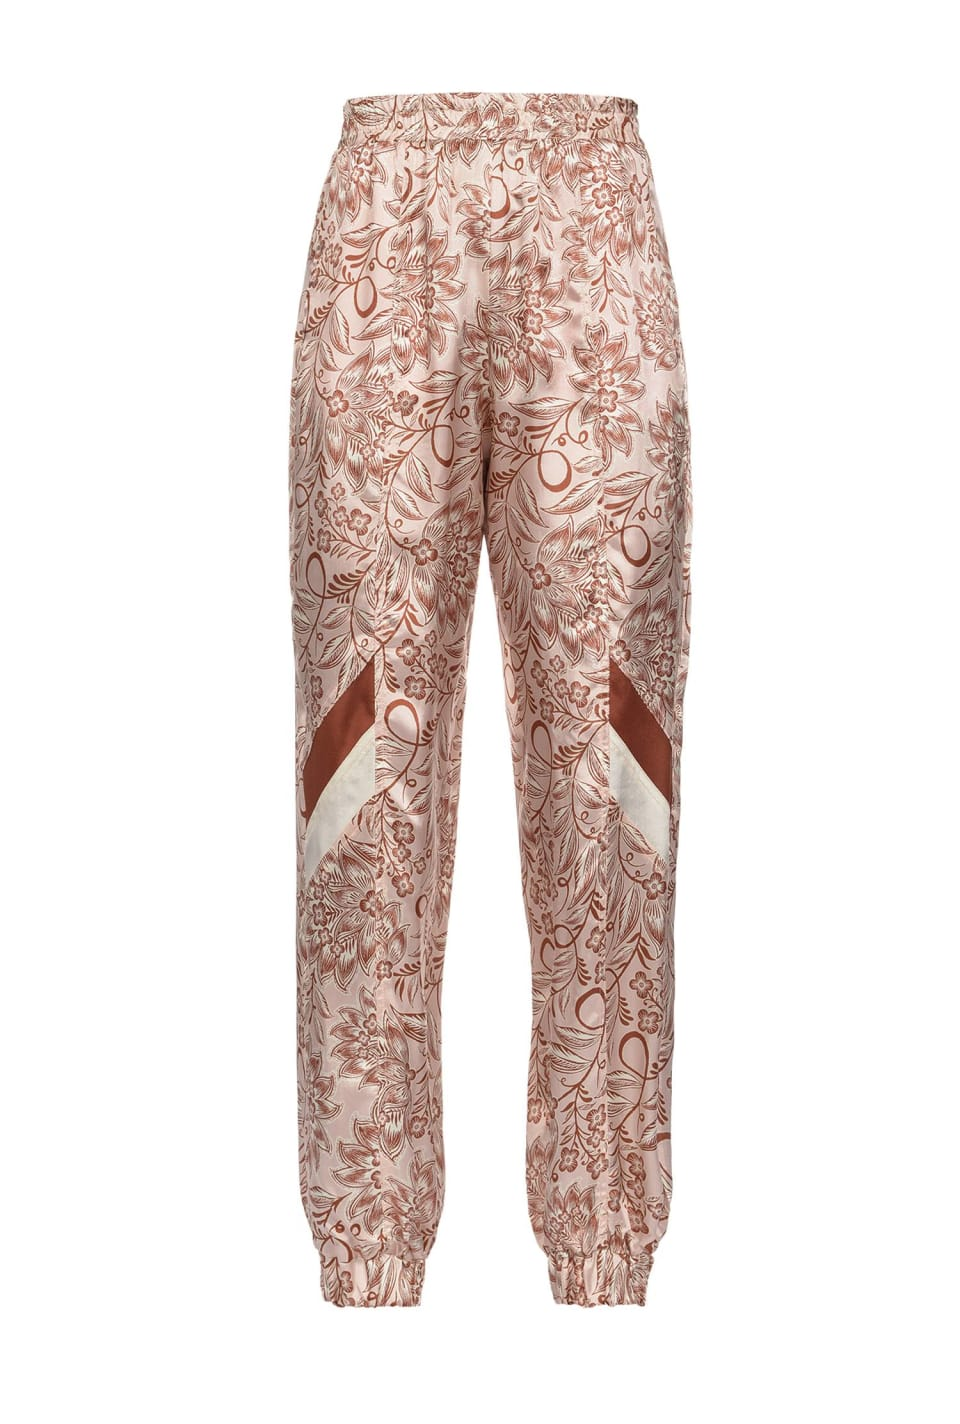 Ethnic floral print trousers